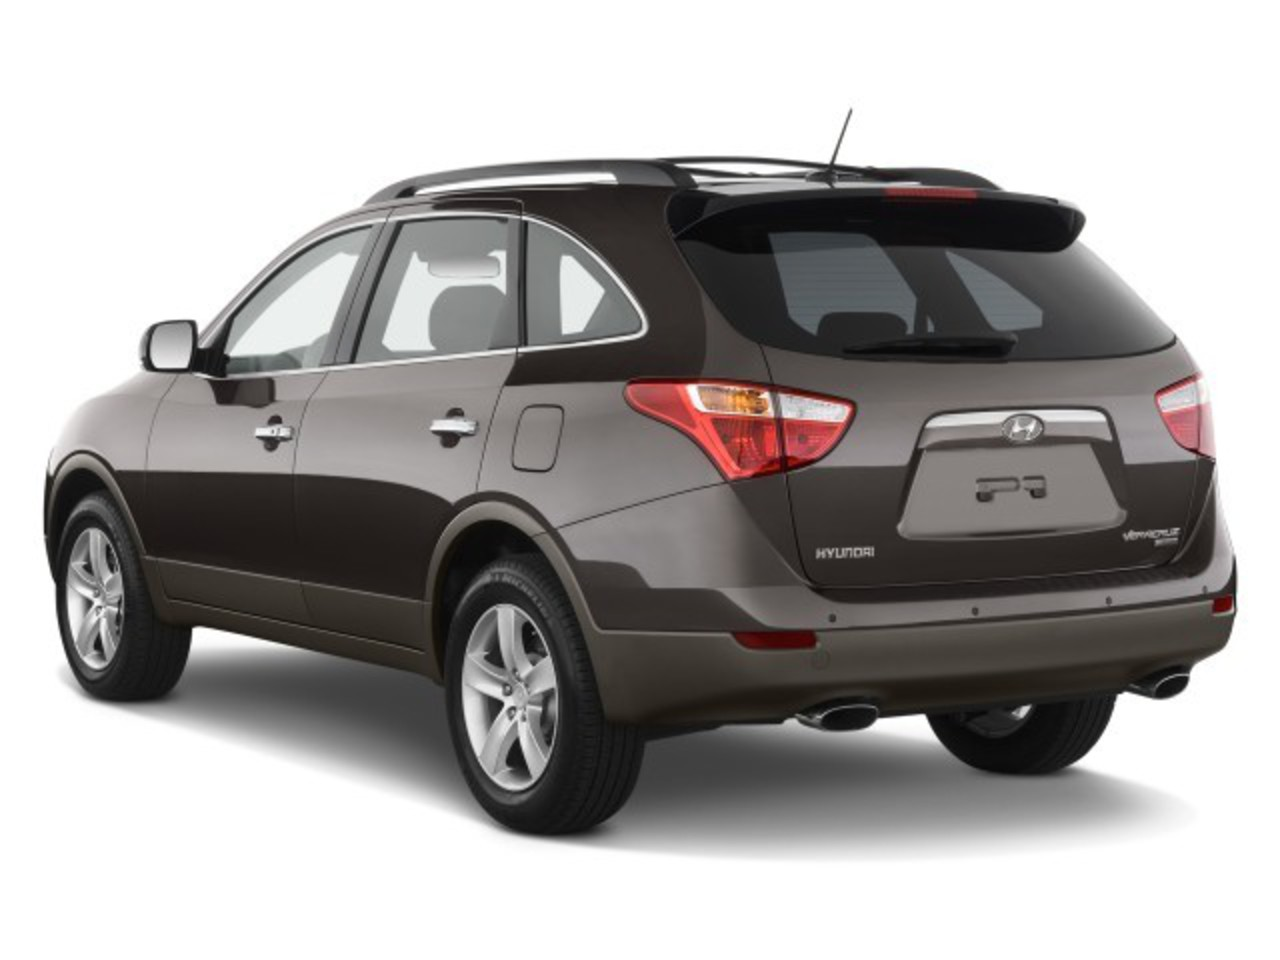 Angular Rear Exterior View - 2010 Hyundai Veracruz FWD 4-door Limited